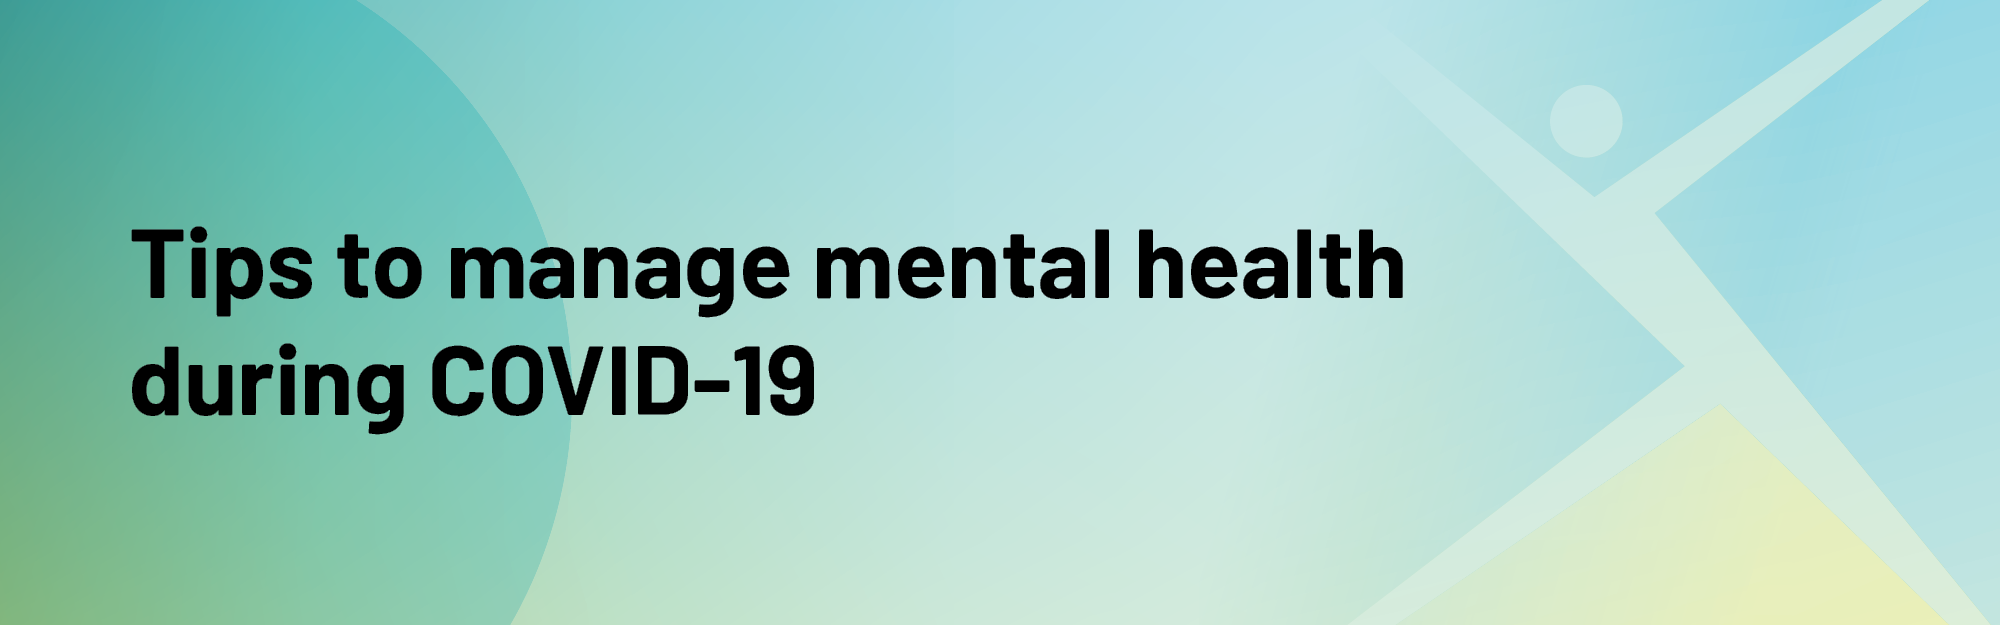 Tips to manage mental health through COVID-19 pandemic